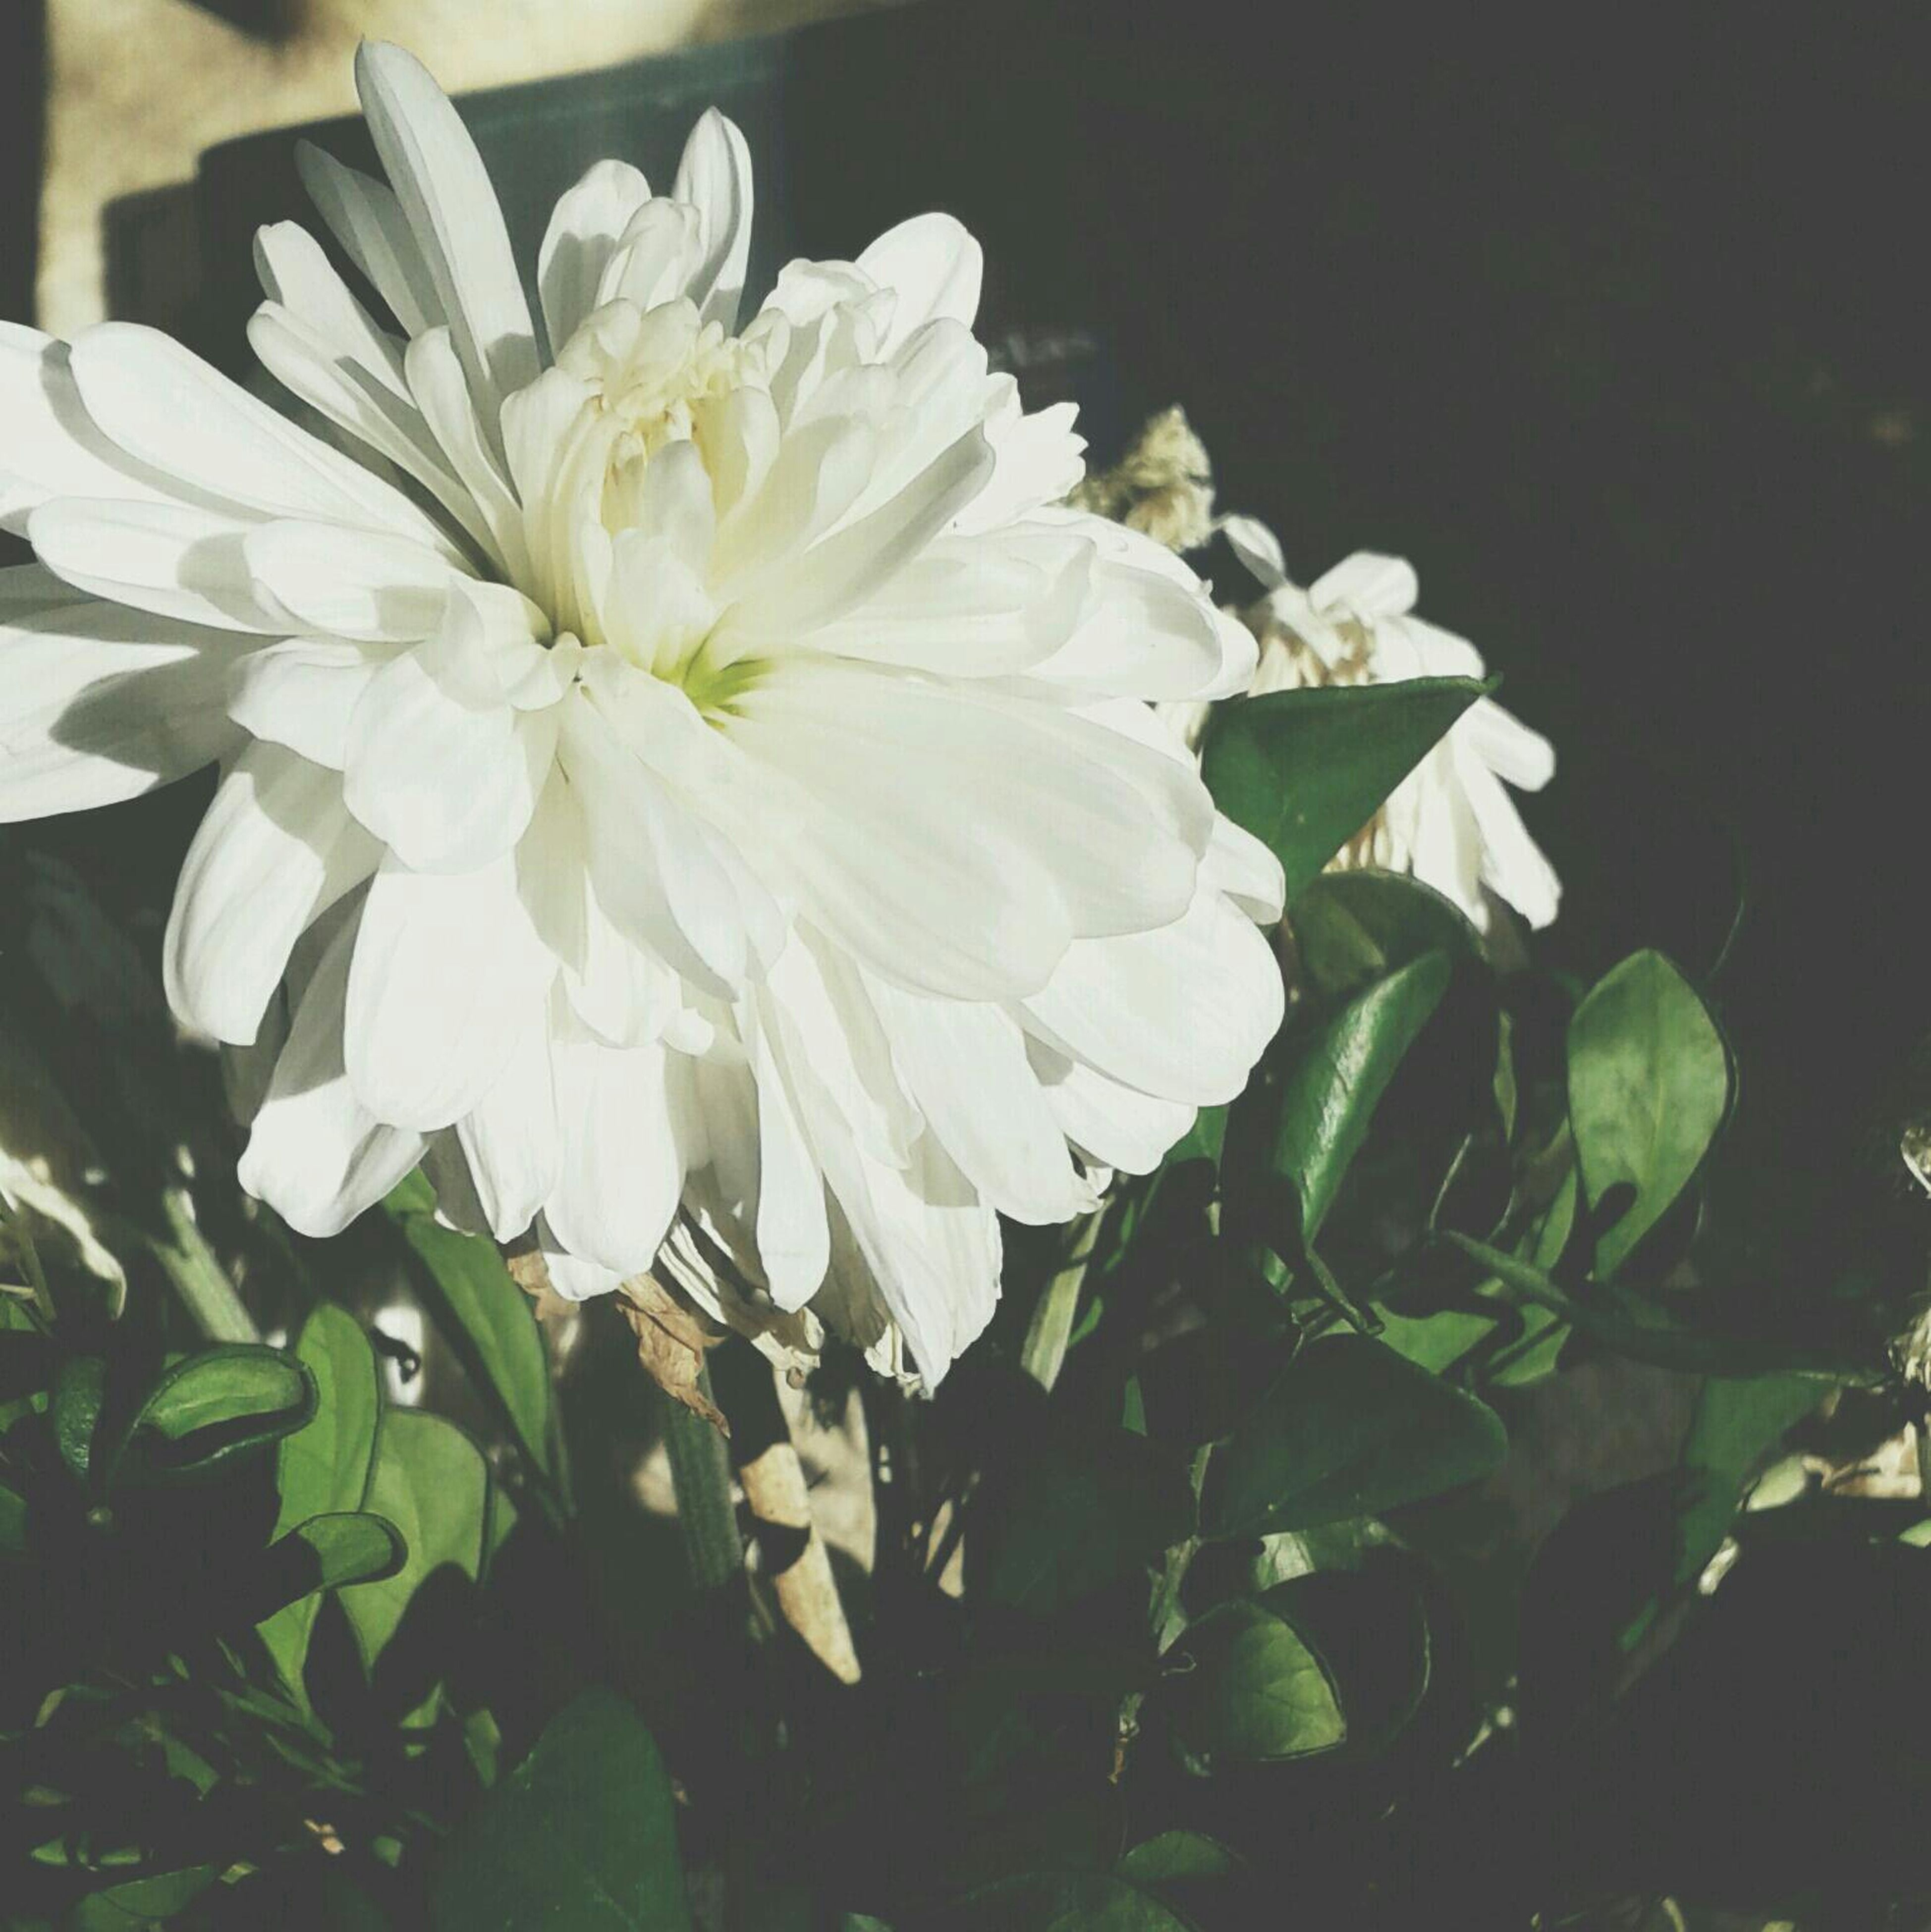 flower, petal, freshness, fragility, flower head, white color, growth, beauty in nature, blooming, close-up, nature, plant, leaf, in bloom, pollen, blossom, white, focus on foreground, no people, botany